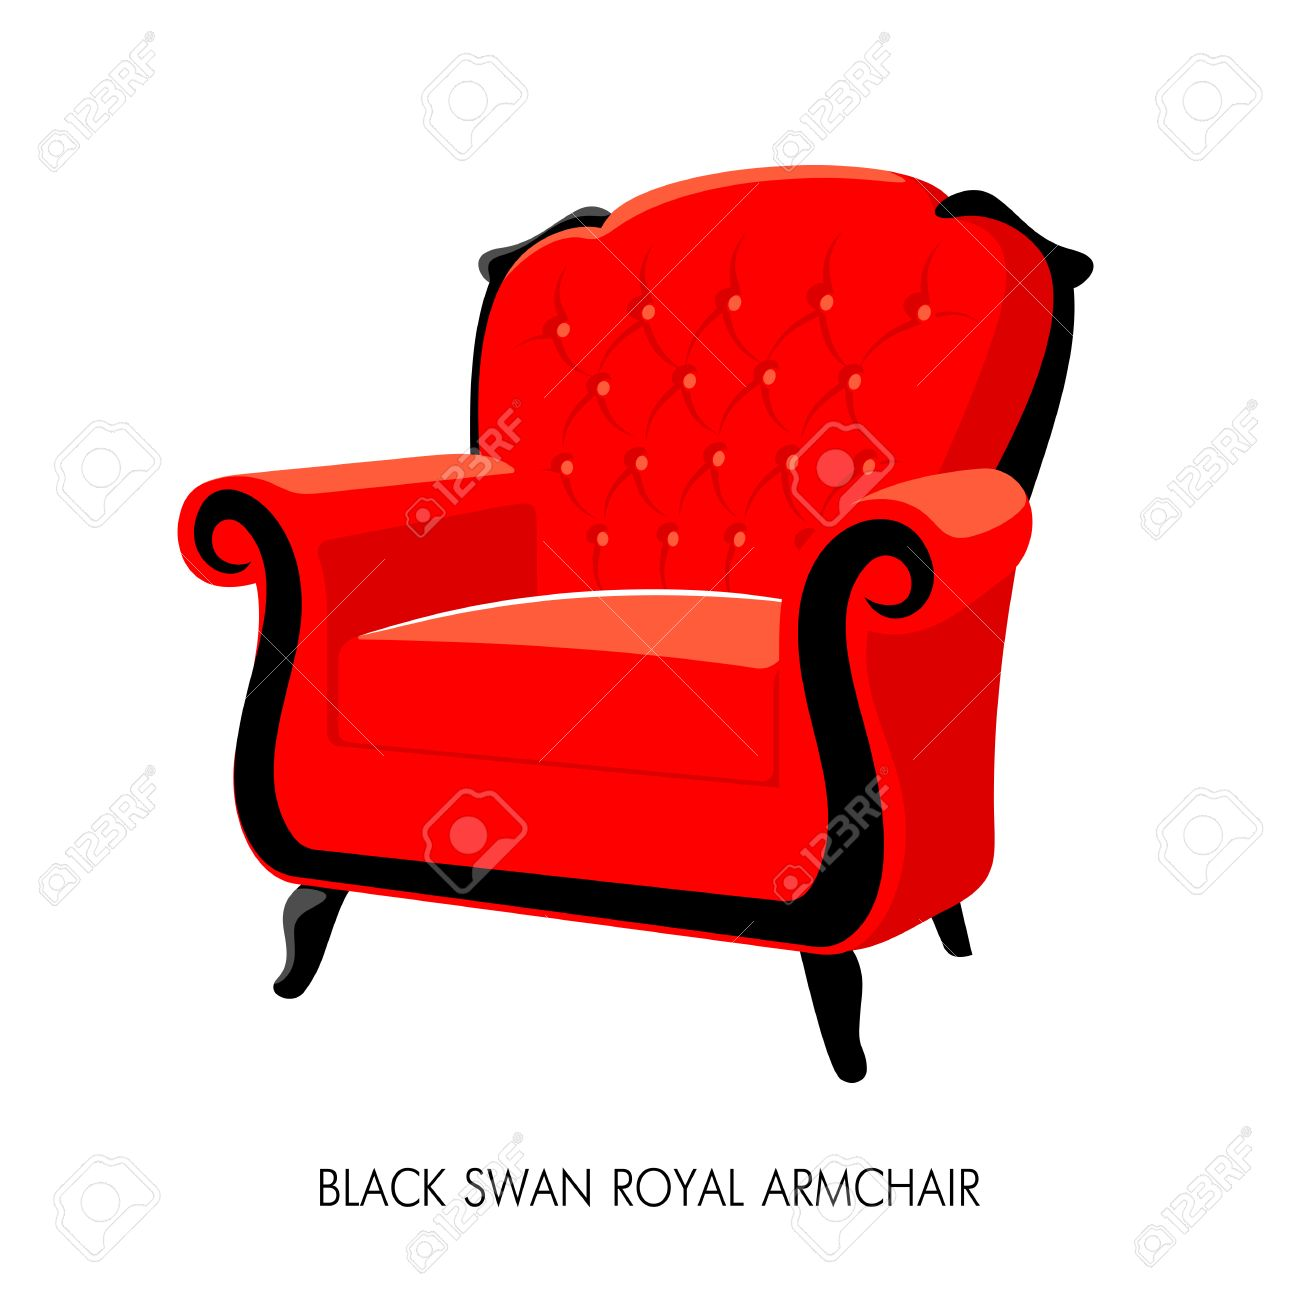 Black Swan Royal Armchair. French Baroque Furniture. Rococo Armchair Vector  Illustration Isolated On White